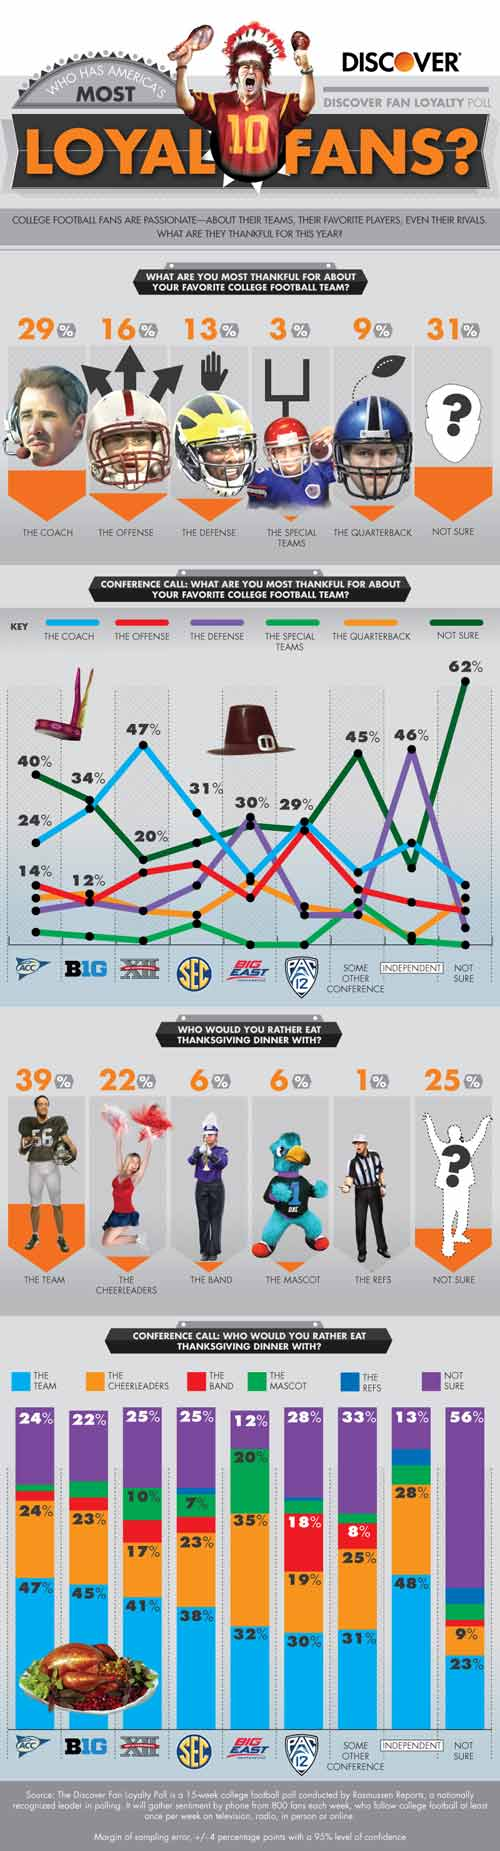 Thanksgiving fan loyalty poll infographic